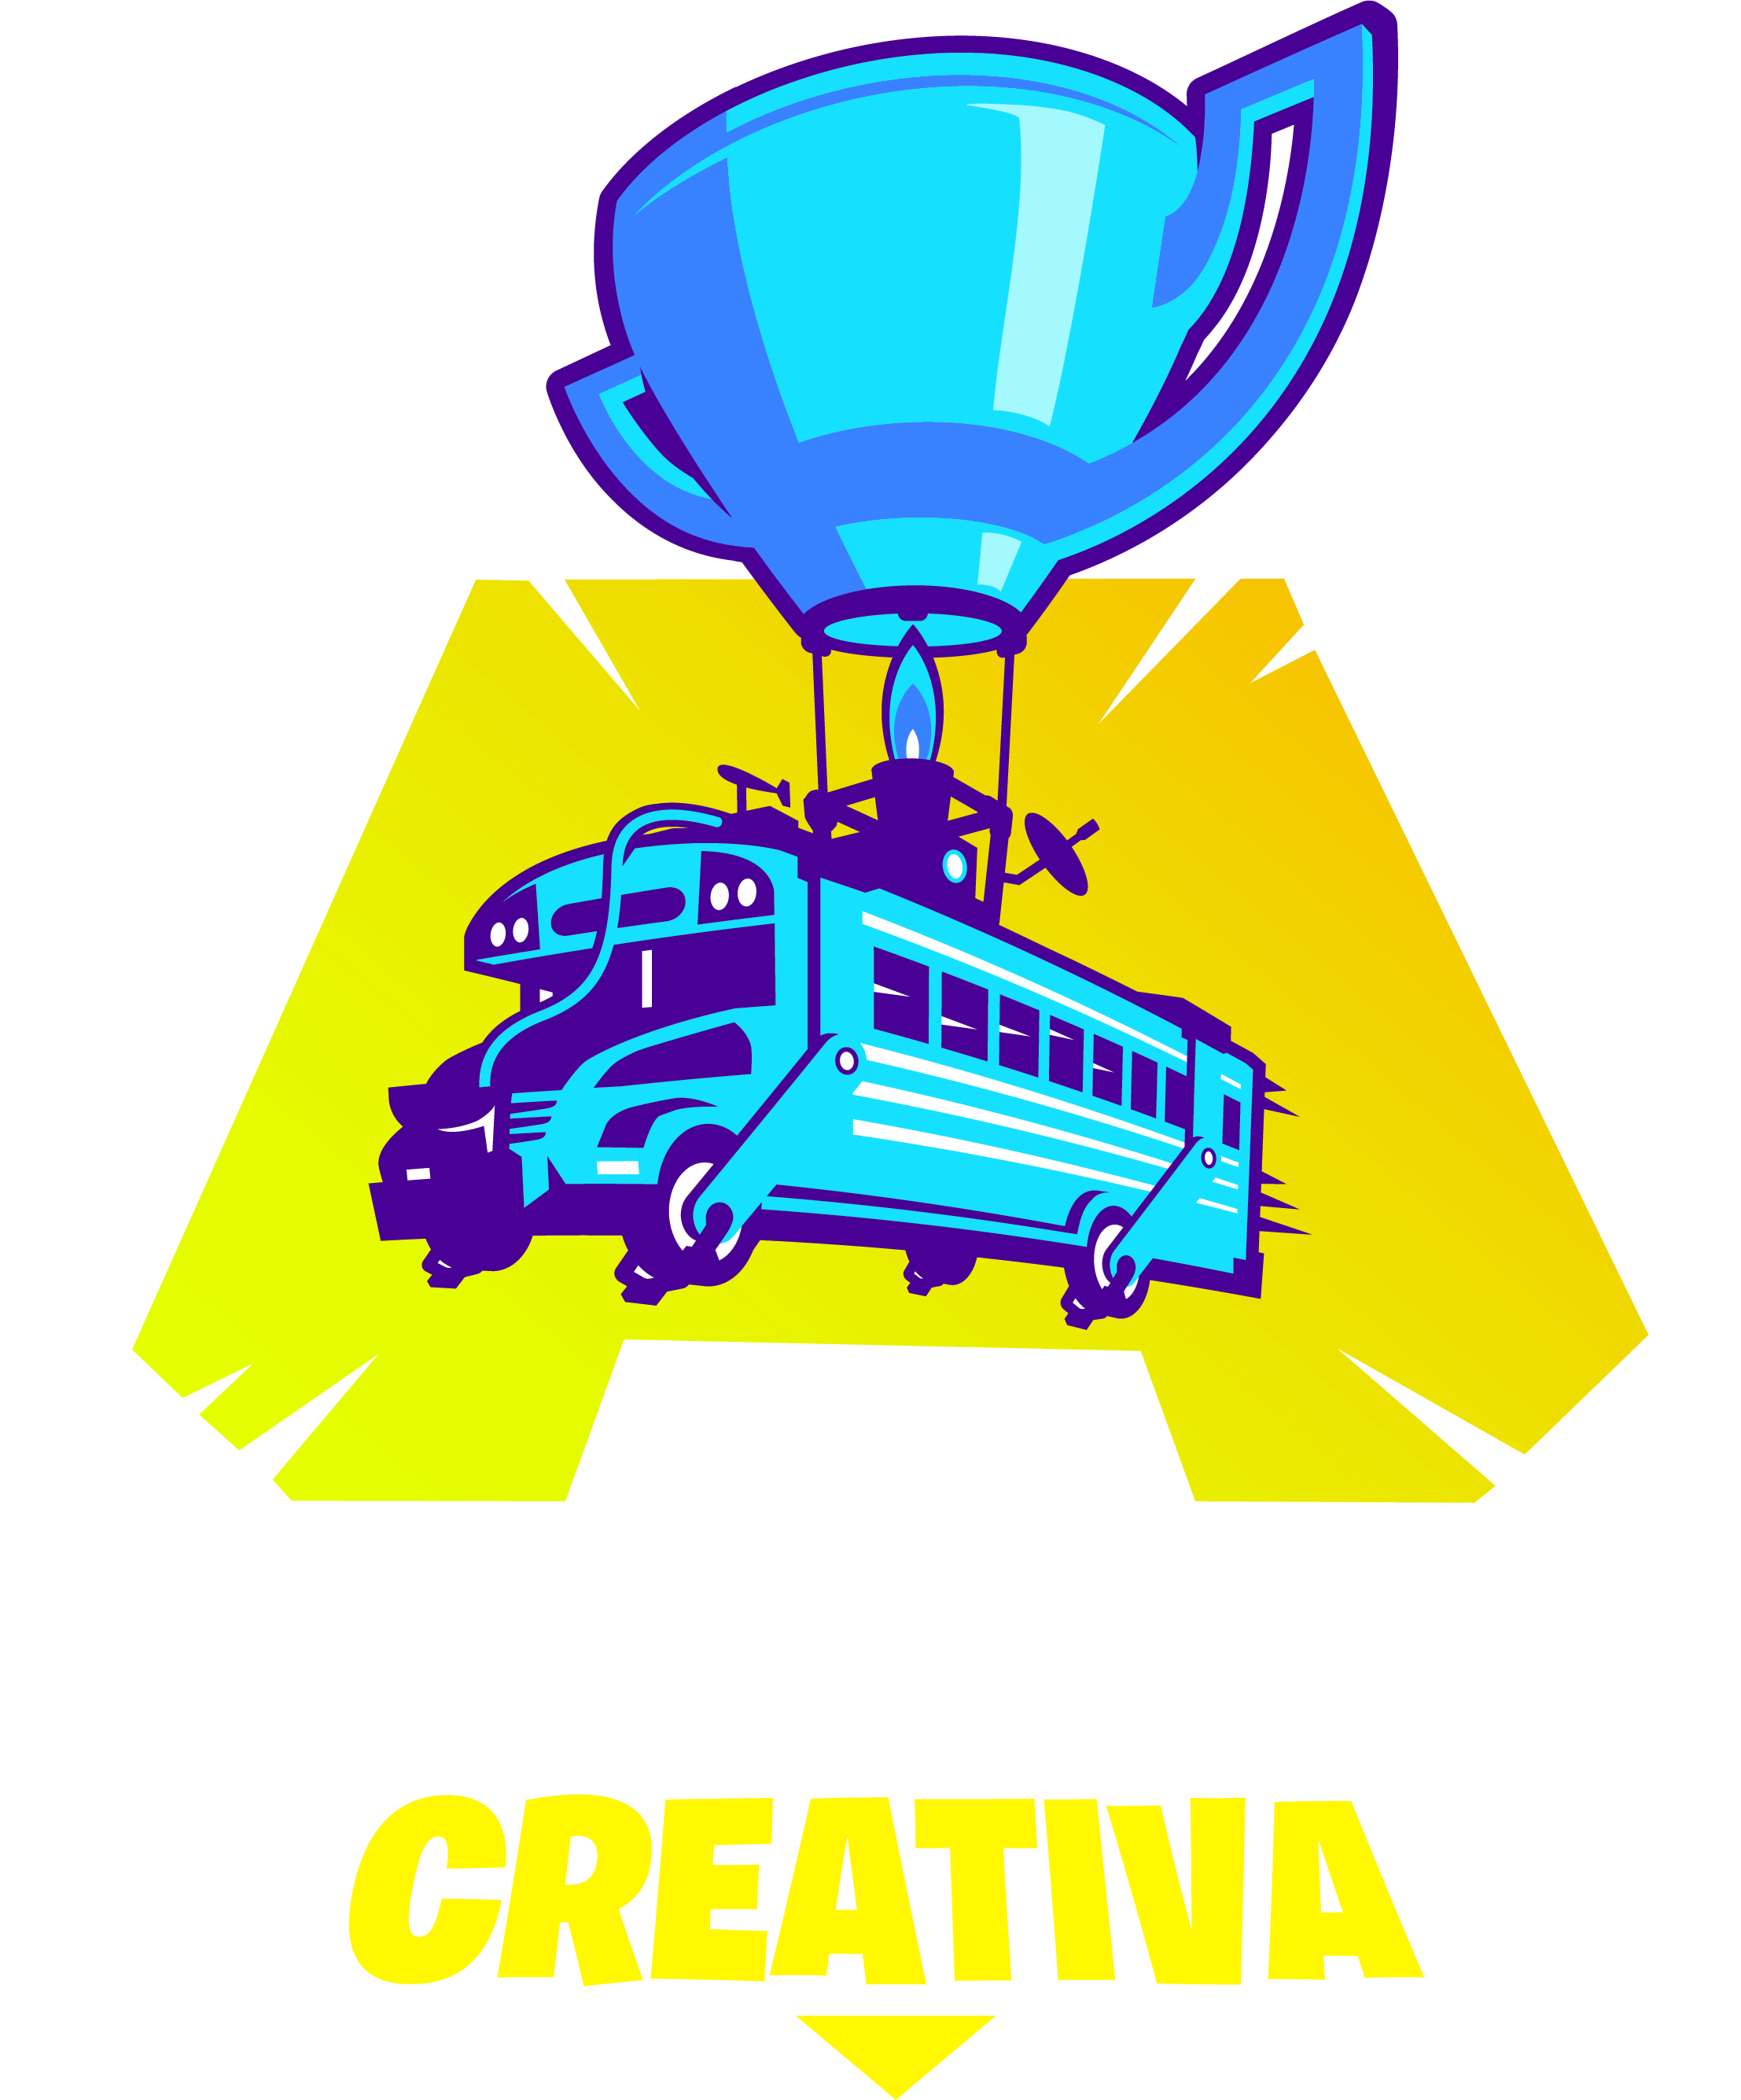 World Cup Creativa